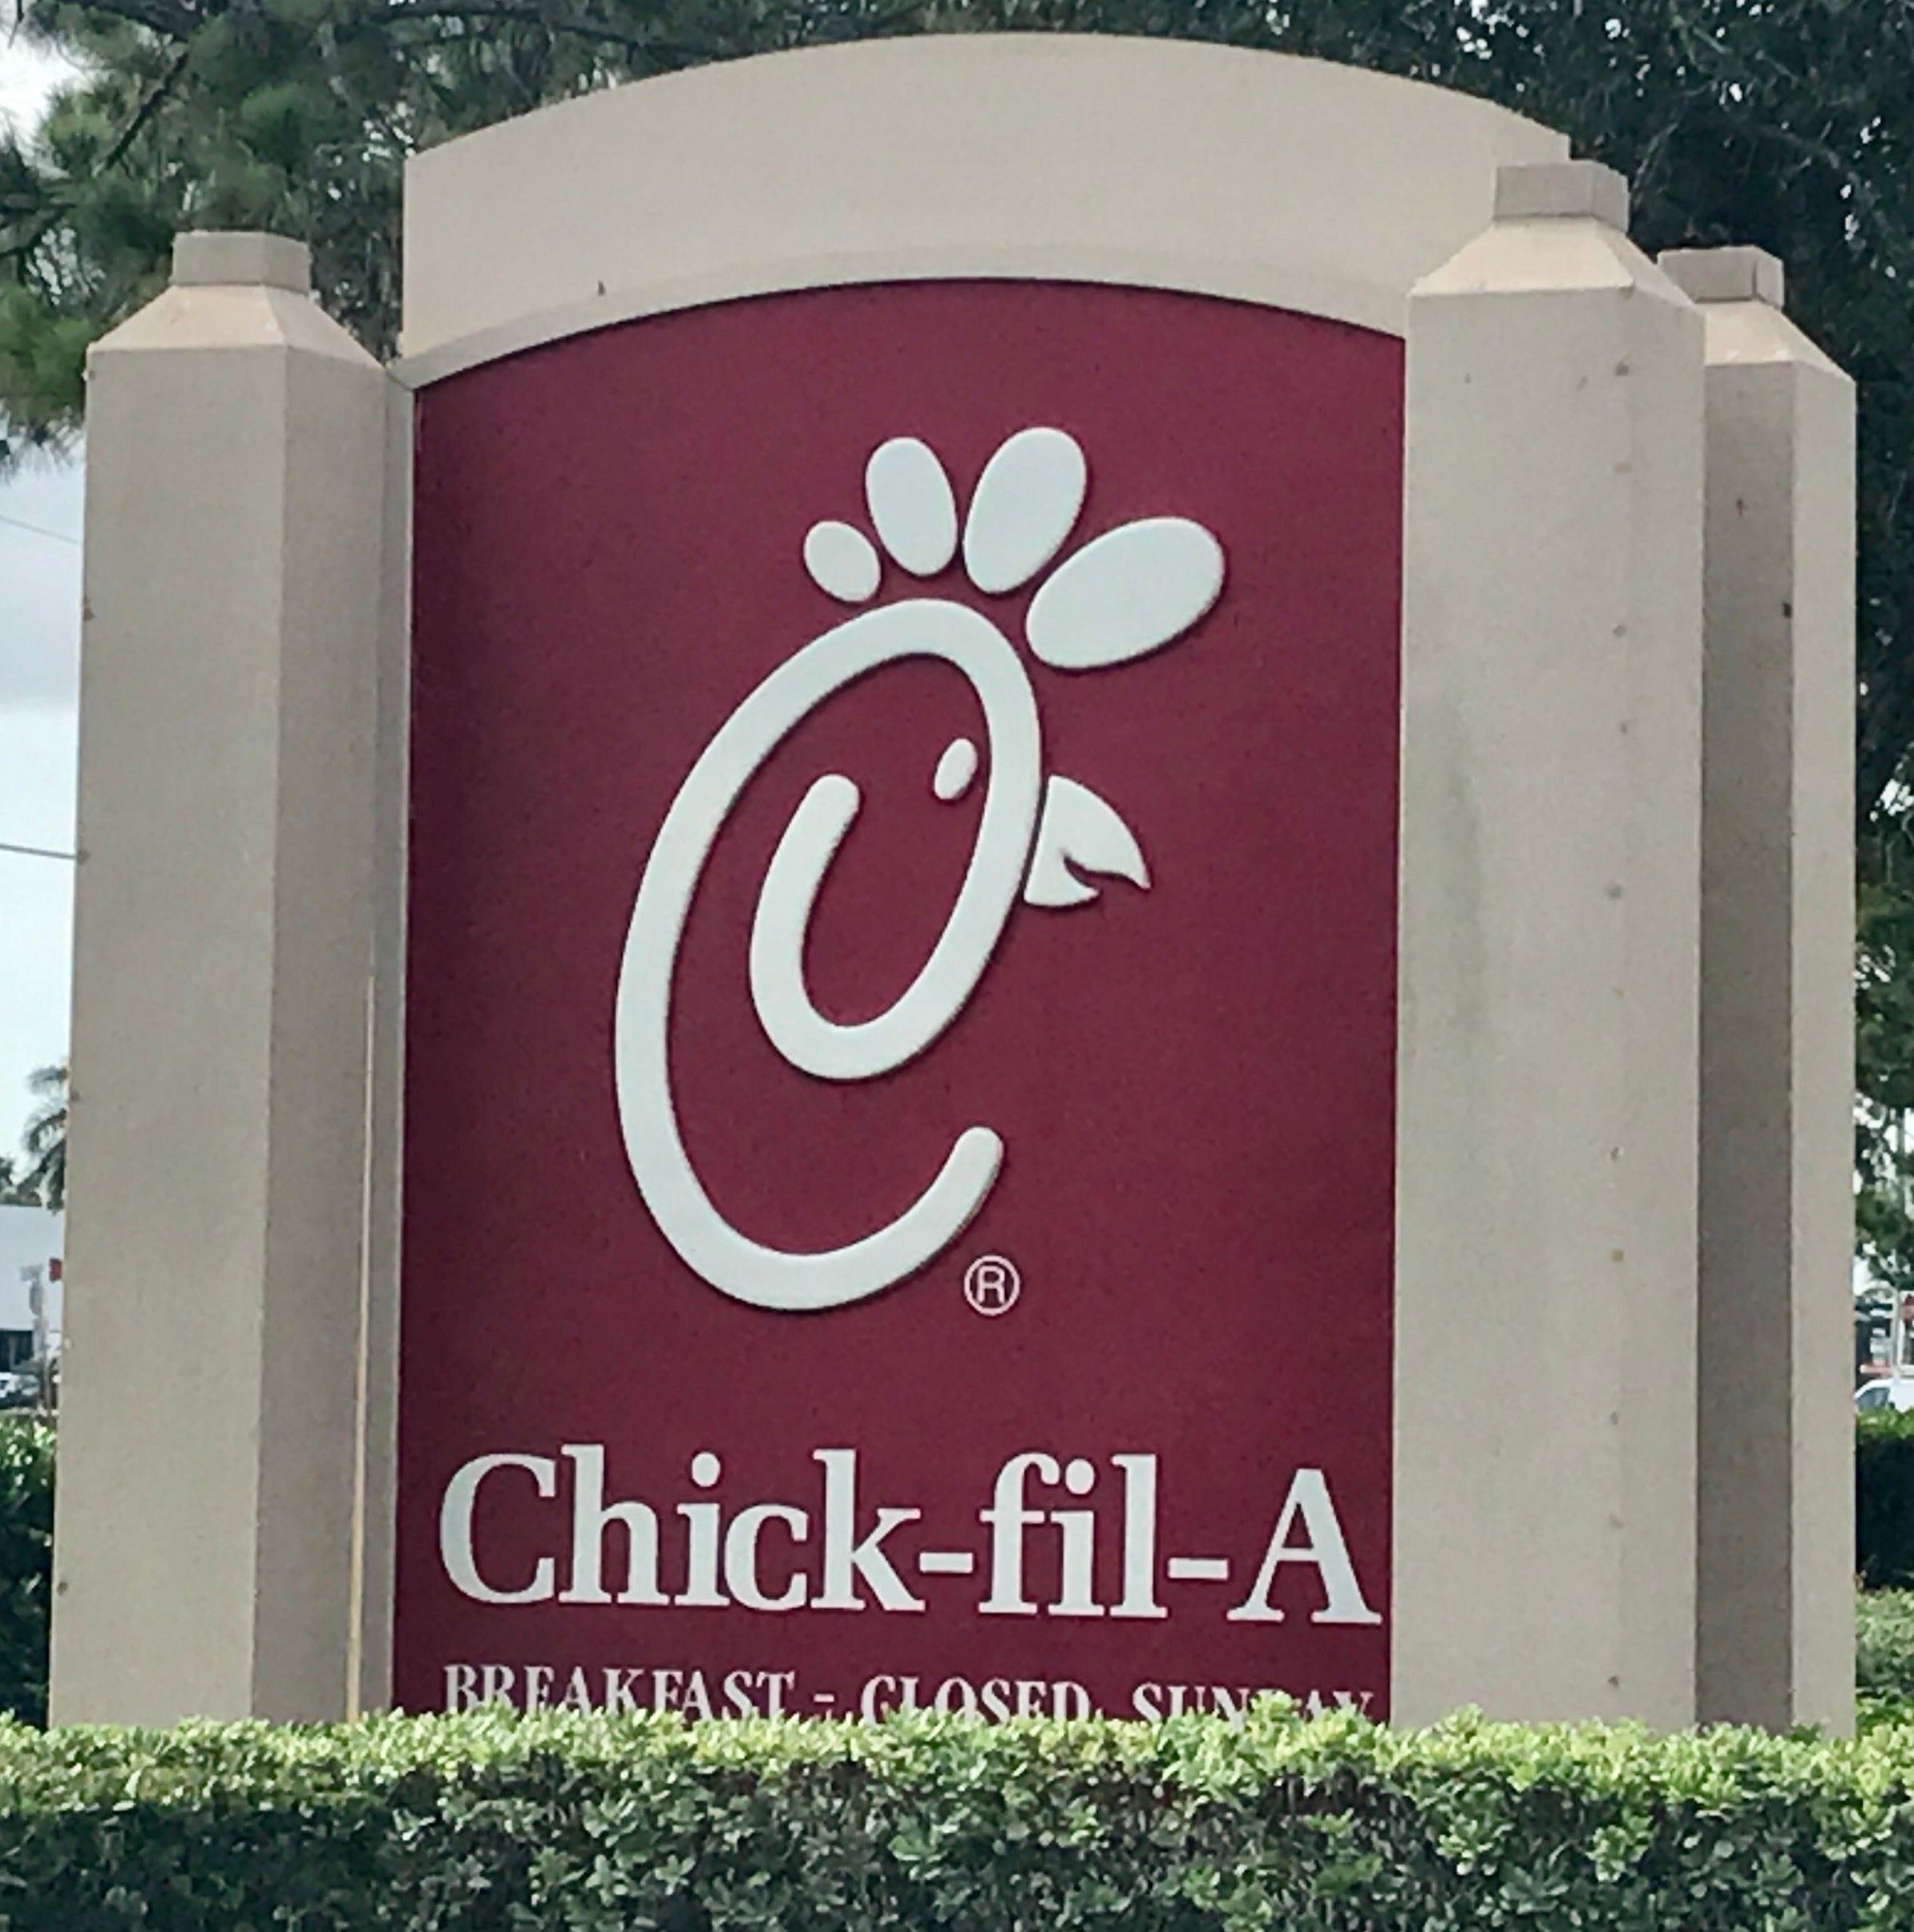 photo relating to Chick Fil a Printable Applications named A fresh new Chick-fil-A cafe is coming towards Viera